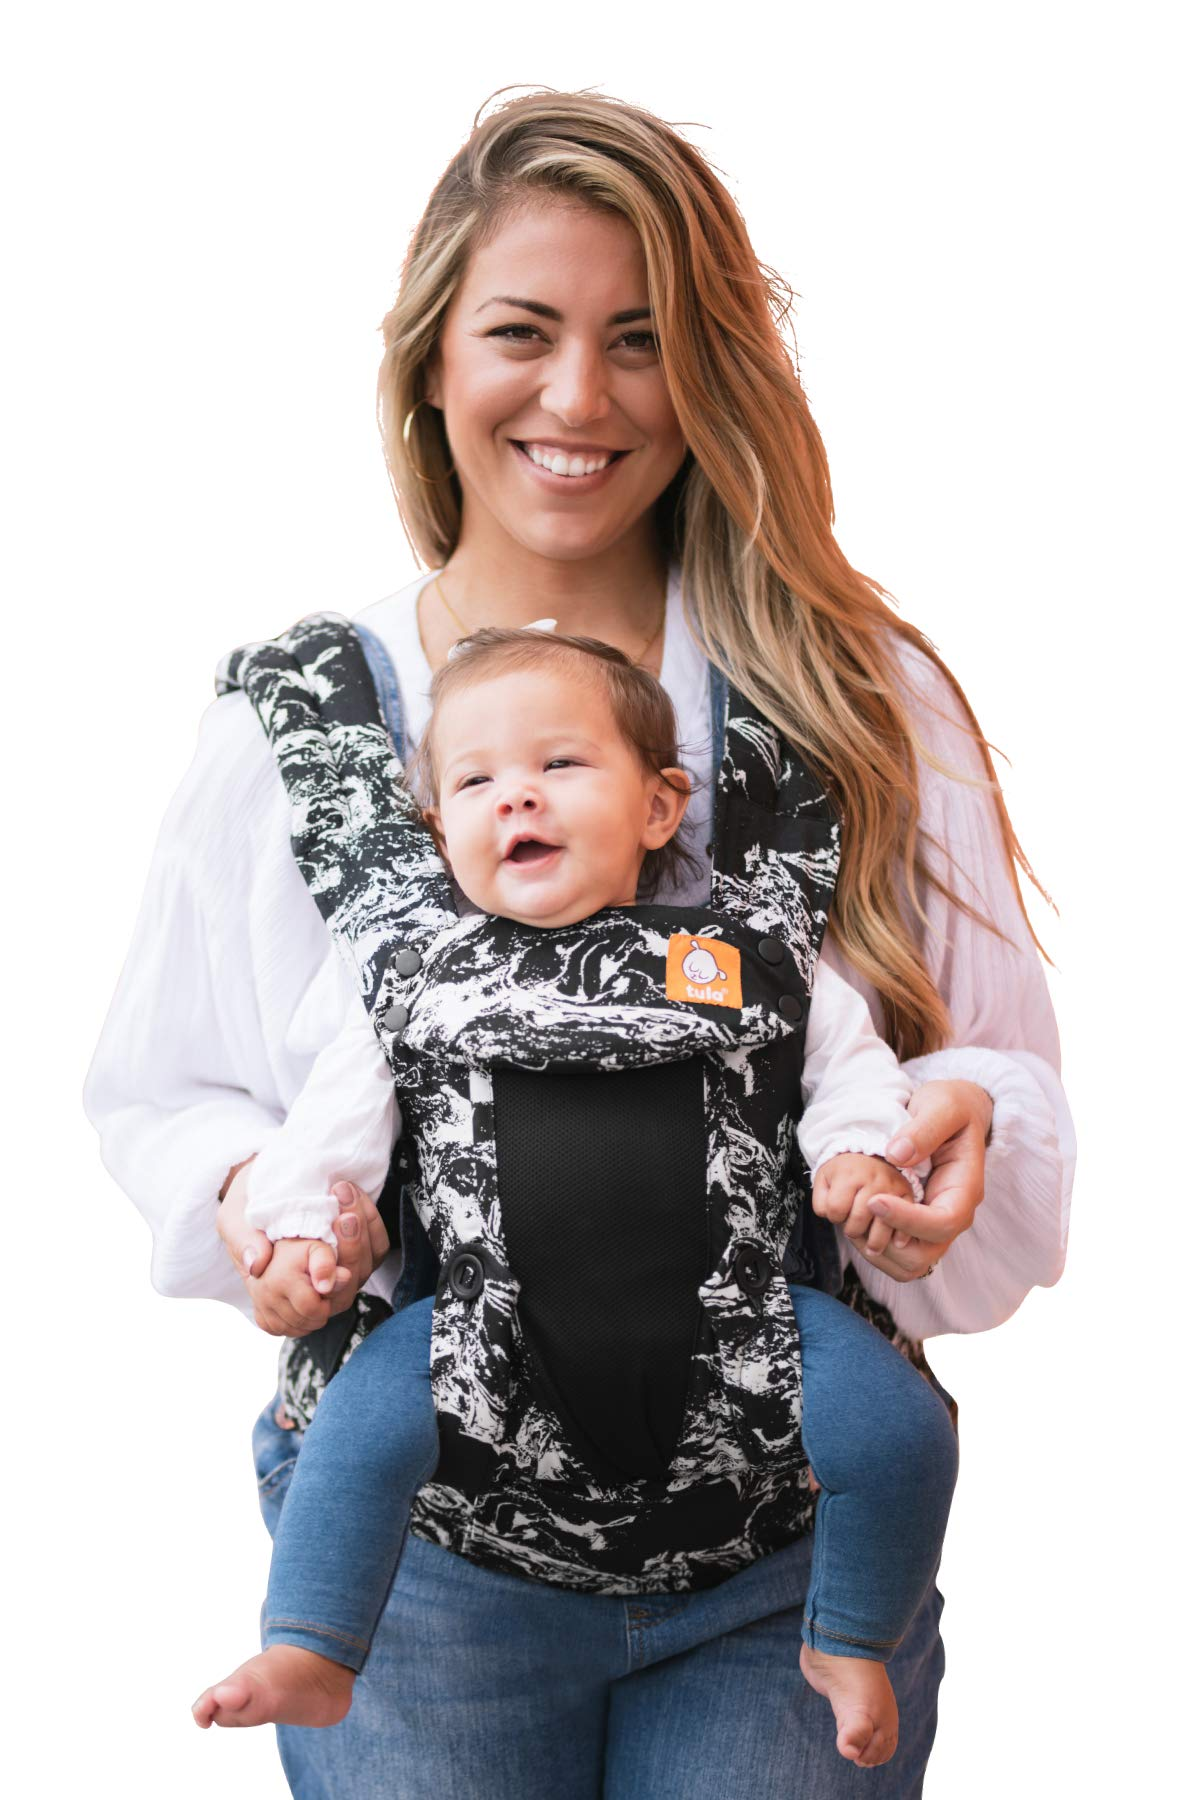 Baby Tula Coast Explore Mesh Baby Carrier 3.2 - 20.4 kg, Adjustable Newborn to Toddler Carrier, Multiple Ergonomic Positions Front/Back, Breathable - Coast Marble, Black/White Marble with Black Mesh Tula STAY COOL MESH CARRIER PANEL: Large mesh panel provides extra ventilation for optimal breathability to keep wearer and baby cool. BREATHABLE & LIGHTWEIGHT MATERIAL: Soft and lightweight 100% cotton with a large breathable mesh panel and hood that's easy to clean and machine washable. EVERY CARRY POSITION YOUR BABY WILL NEED, INCLUDING FACING OUT: Multiple positions to carry baby including front facing out*, facing in, and back carry. Each position provides a natural, ergonomic position best for comfortable carrying that promotes healthy hip and spine development for baby. 1